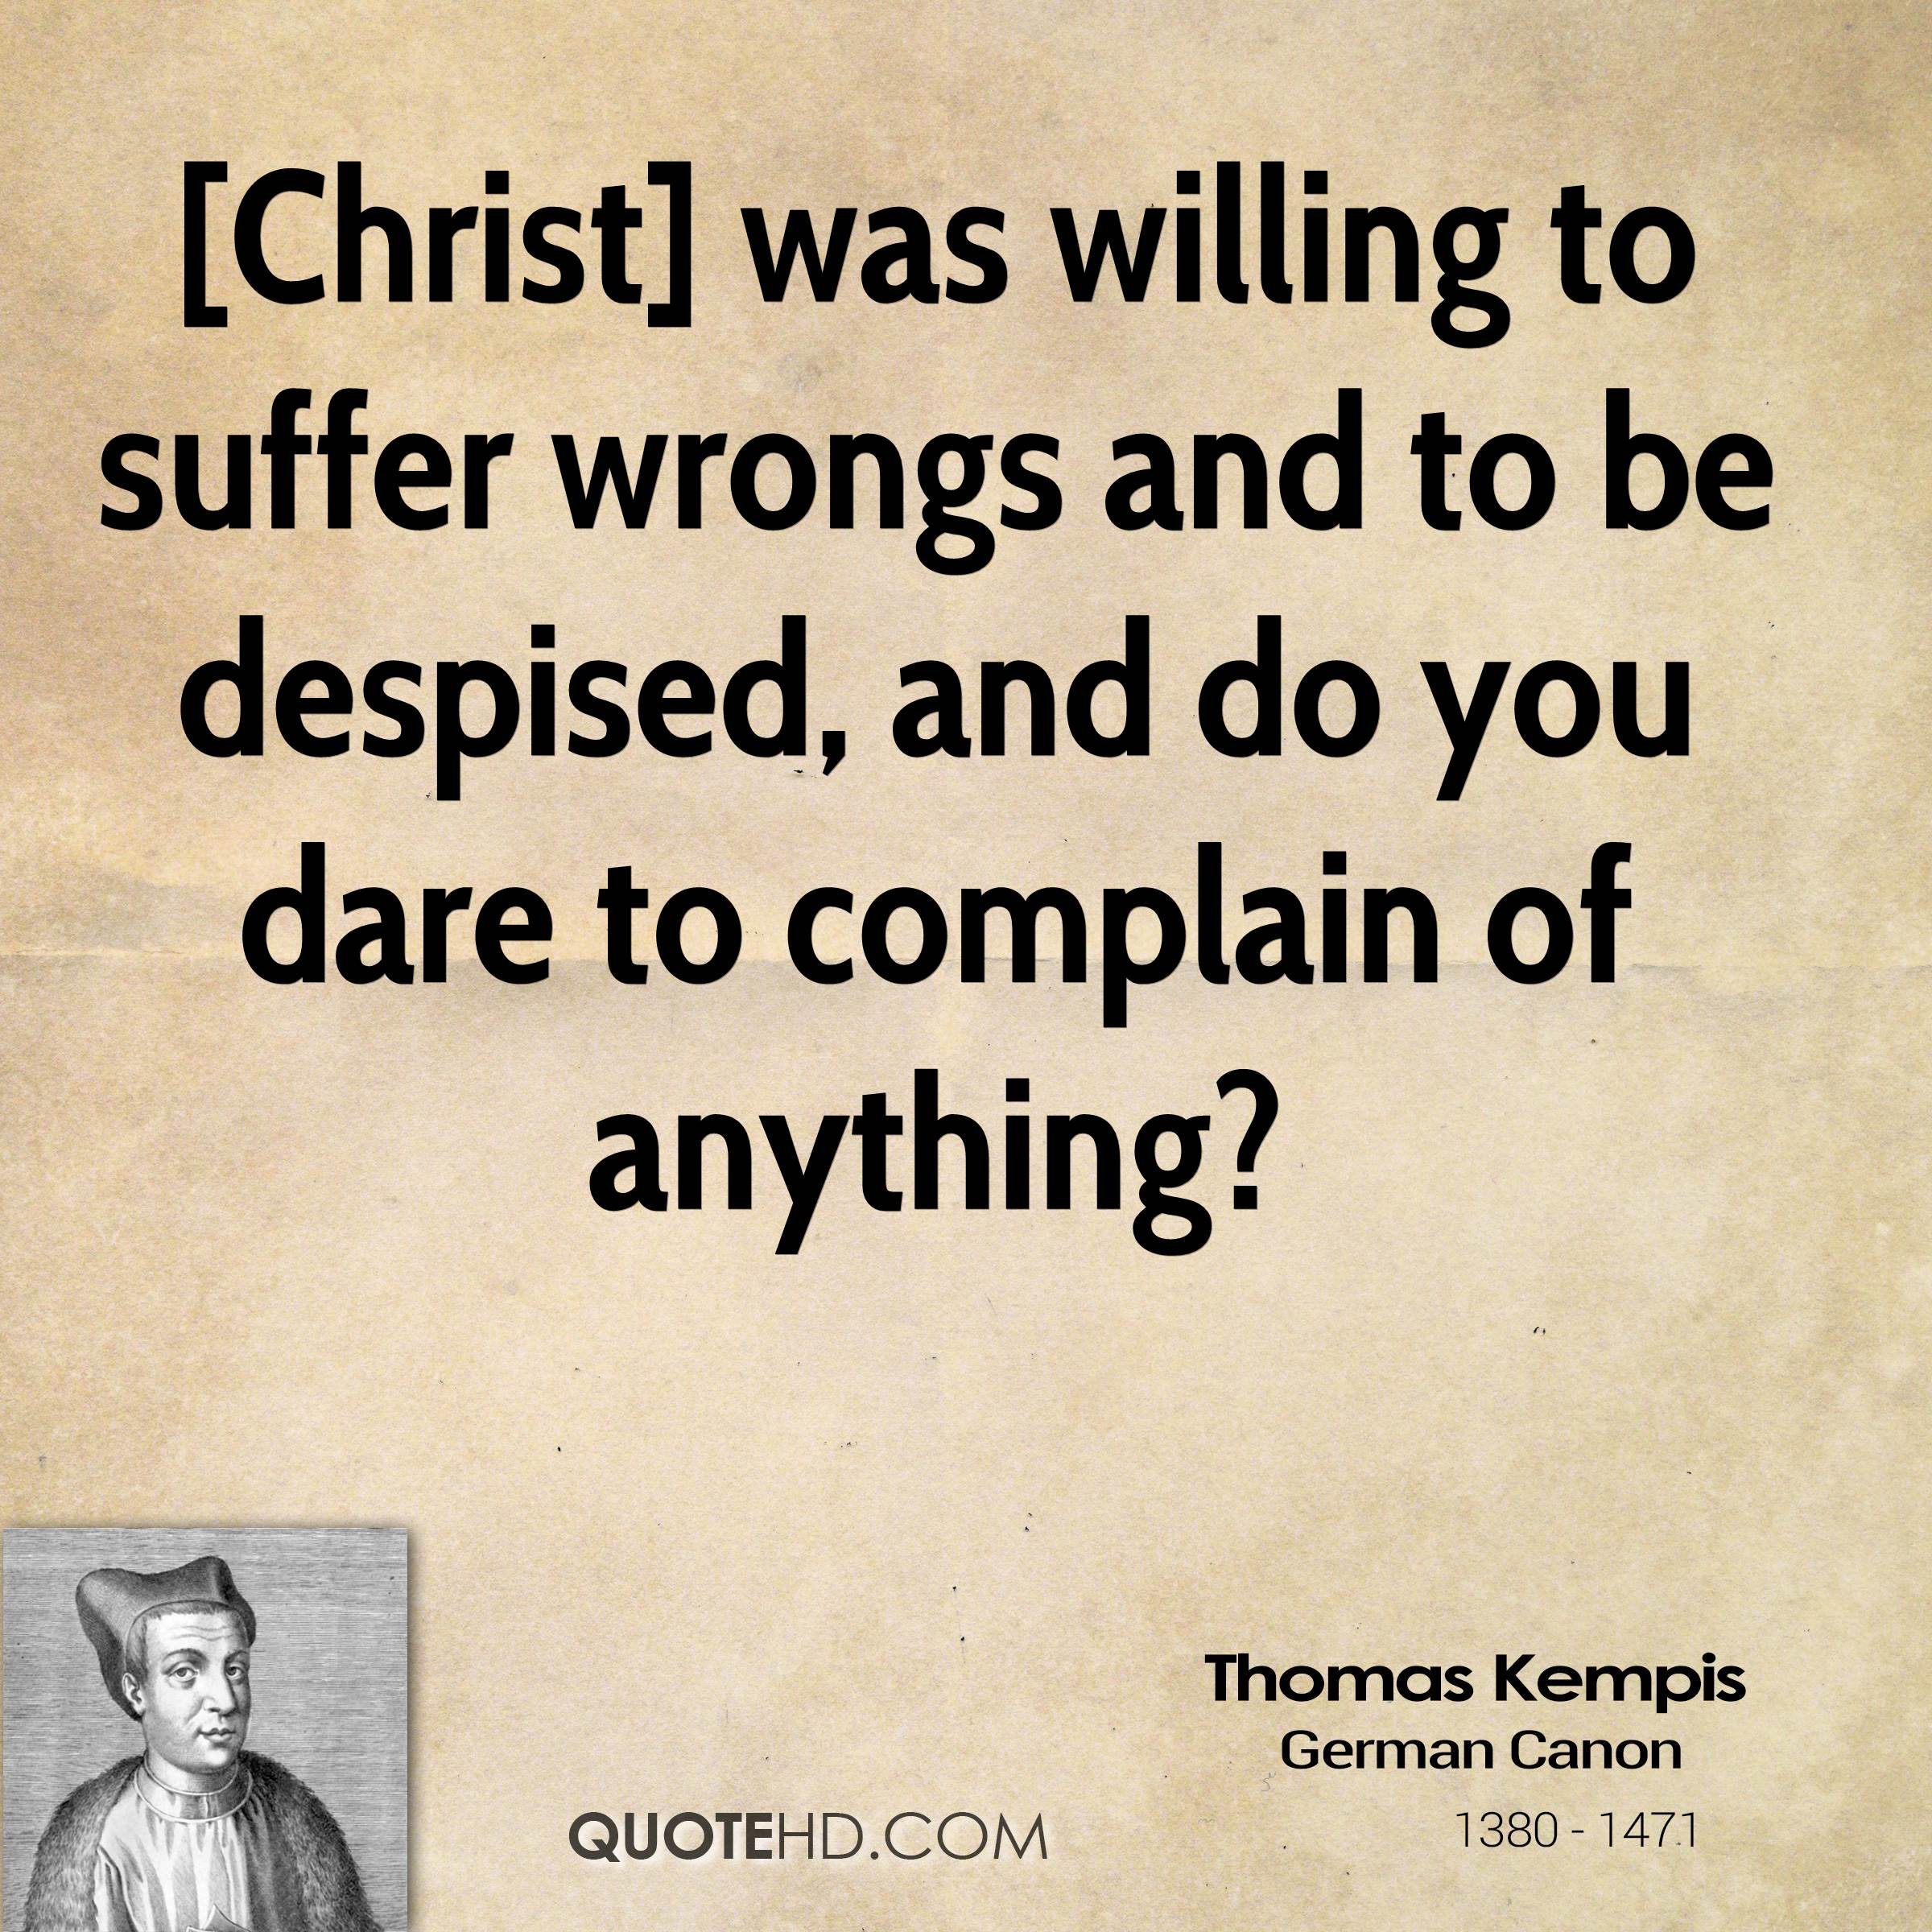 [Christ] was willing to suffer wrongs and to be despised, and do you dare to complain of anything?